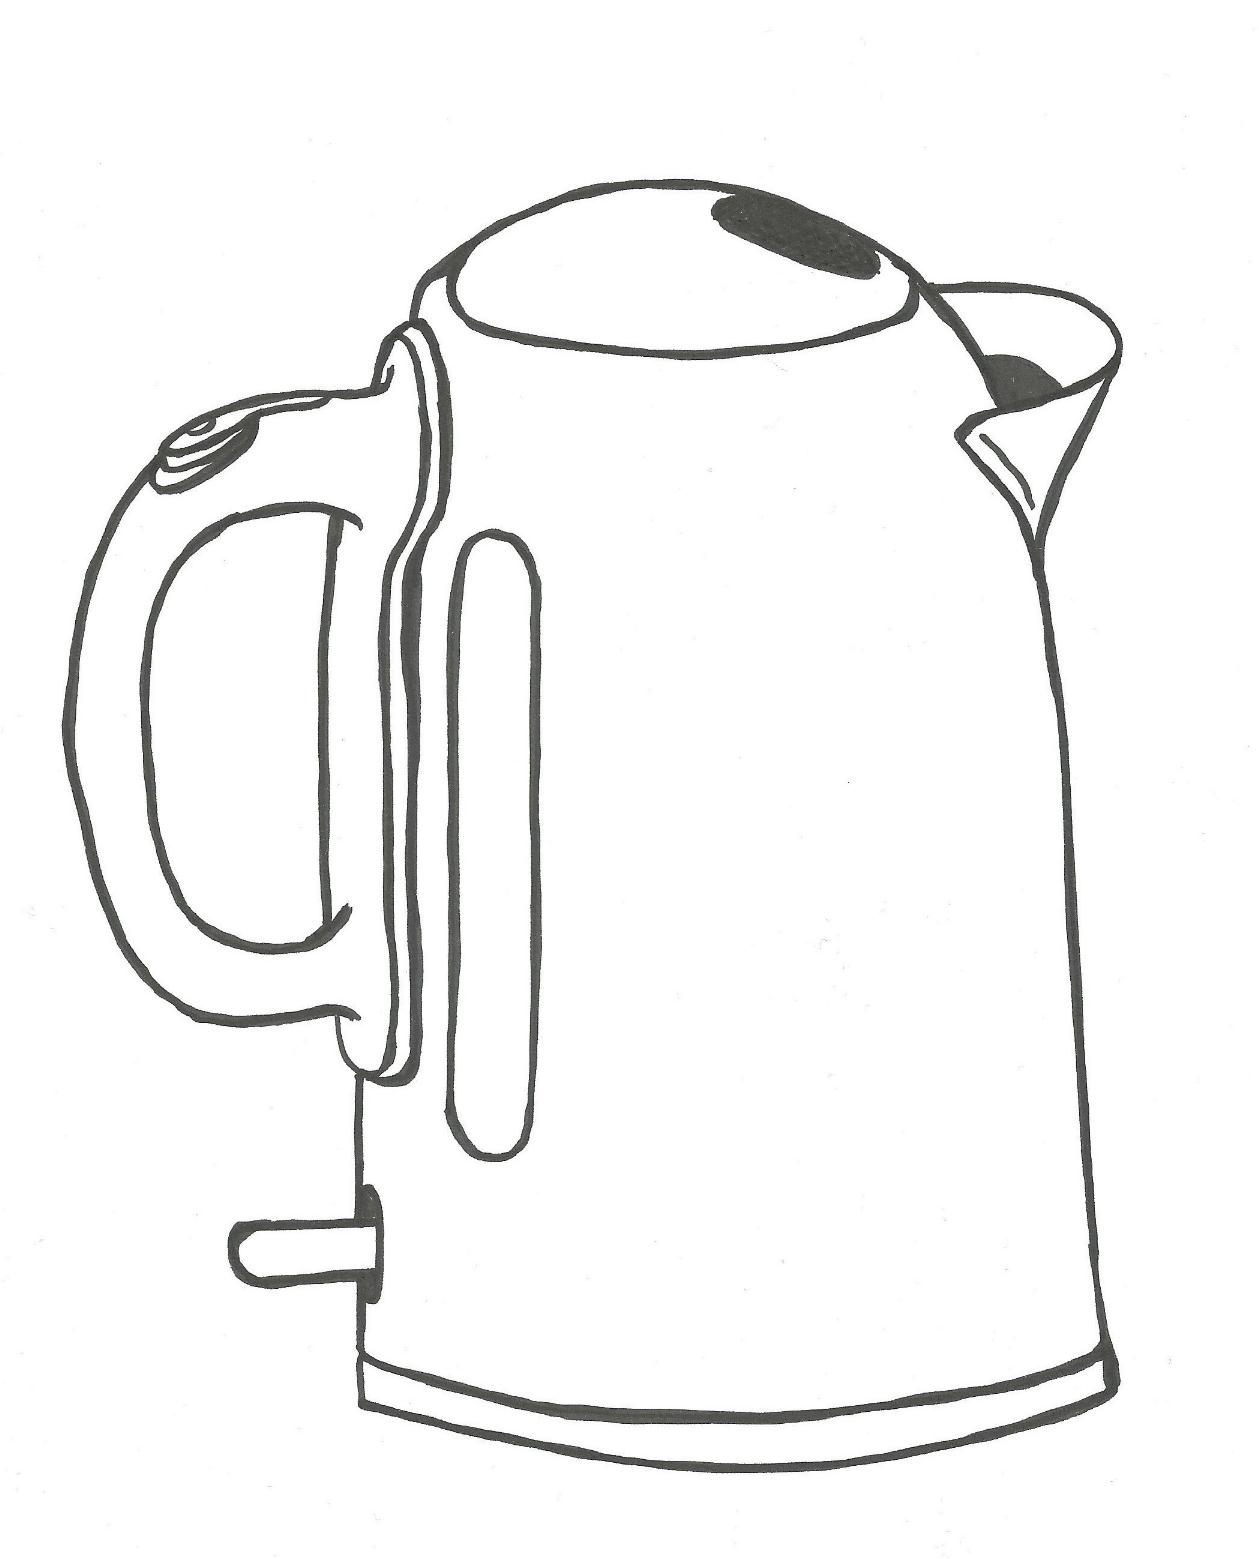 Easy Drawing Of Kettle Sketch Coloring Page